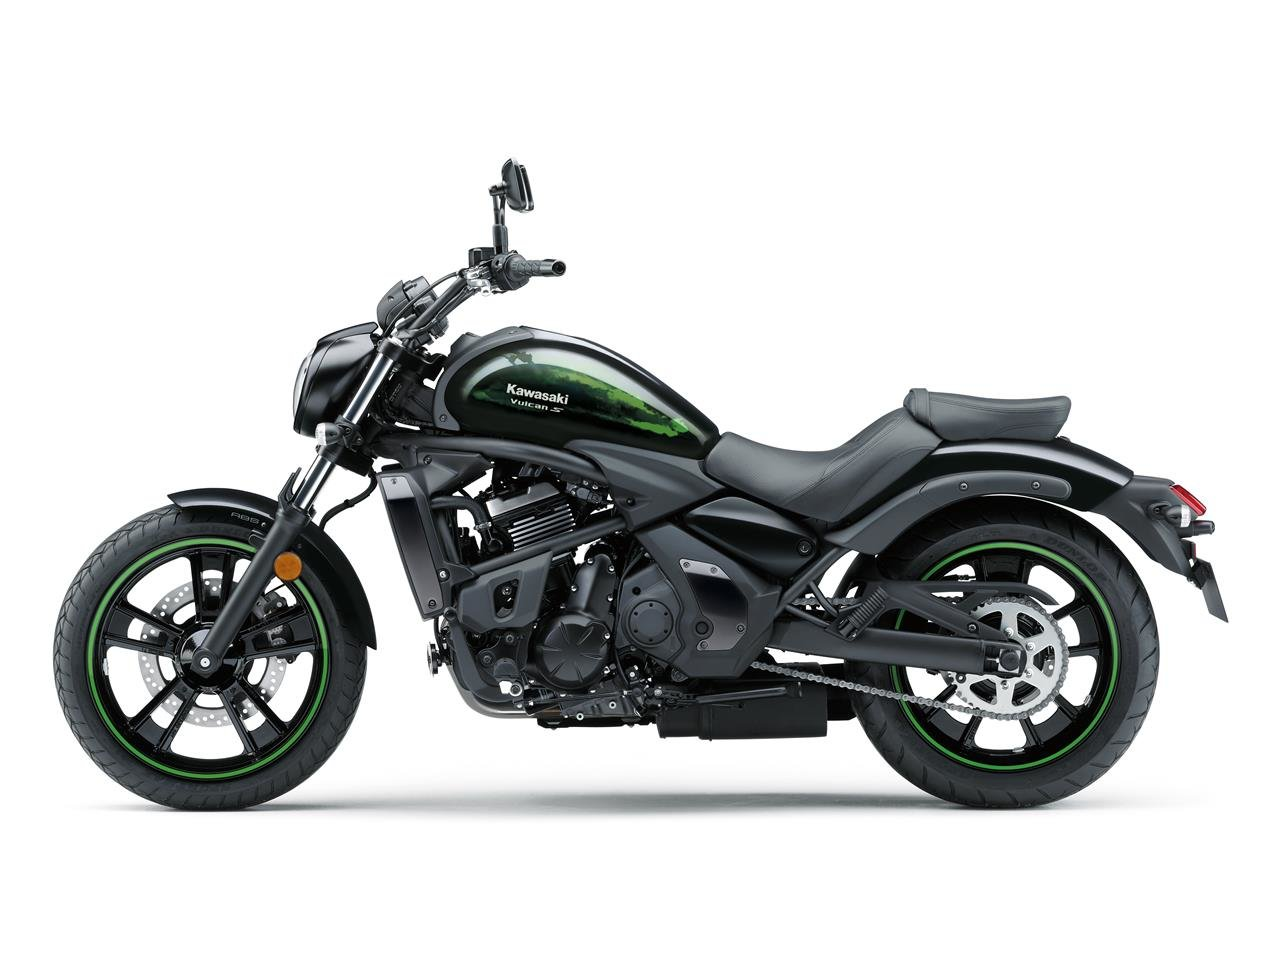 New 2020 Kawasaki Vulcan S SE*£99 Deposit 3 YRS 0% APR** For Sale (picture 3 of 6)